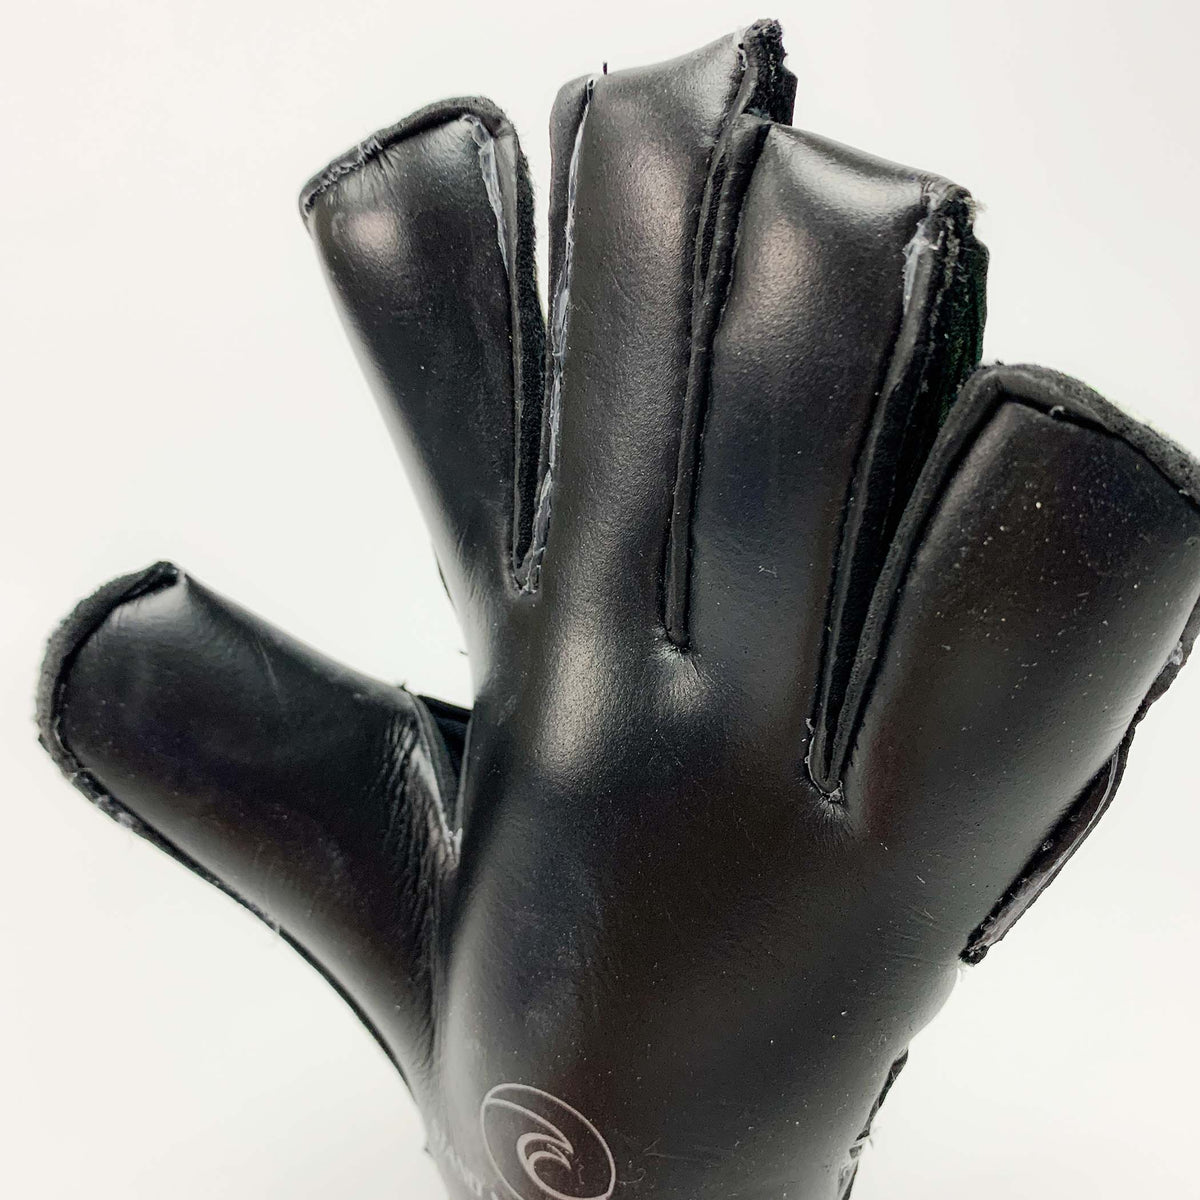 LAGUNA Blake Pro - Fingersave Goalkeeper Gloves West Coast Goalkeeping